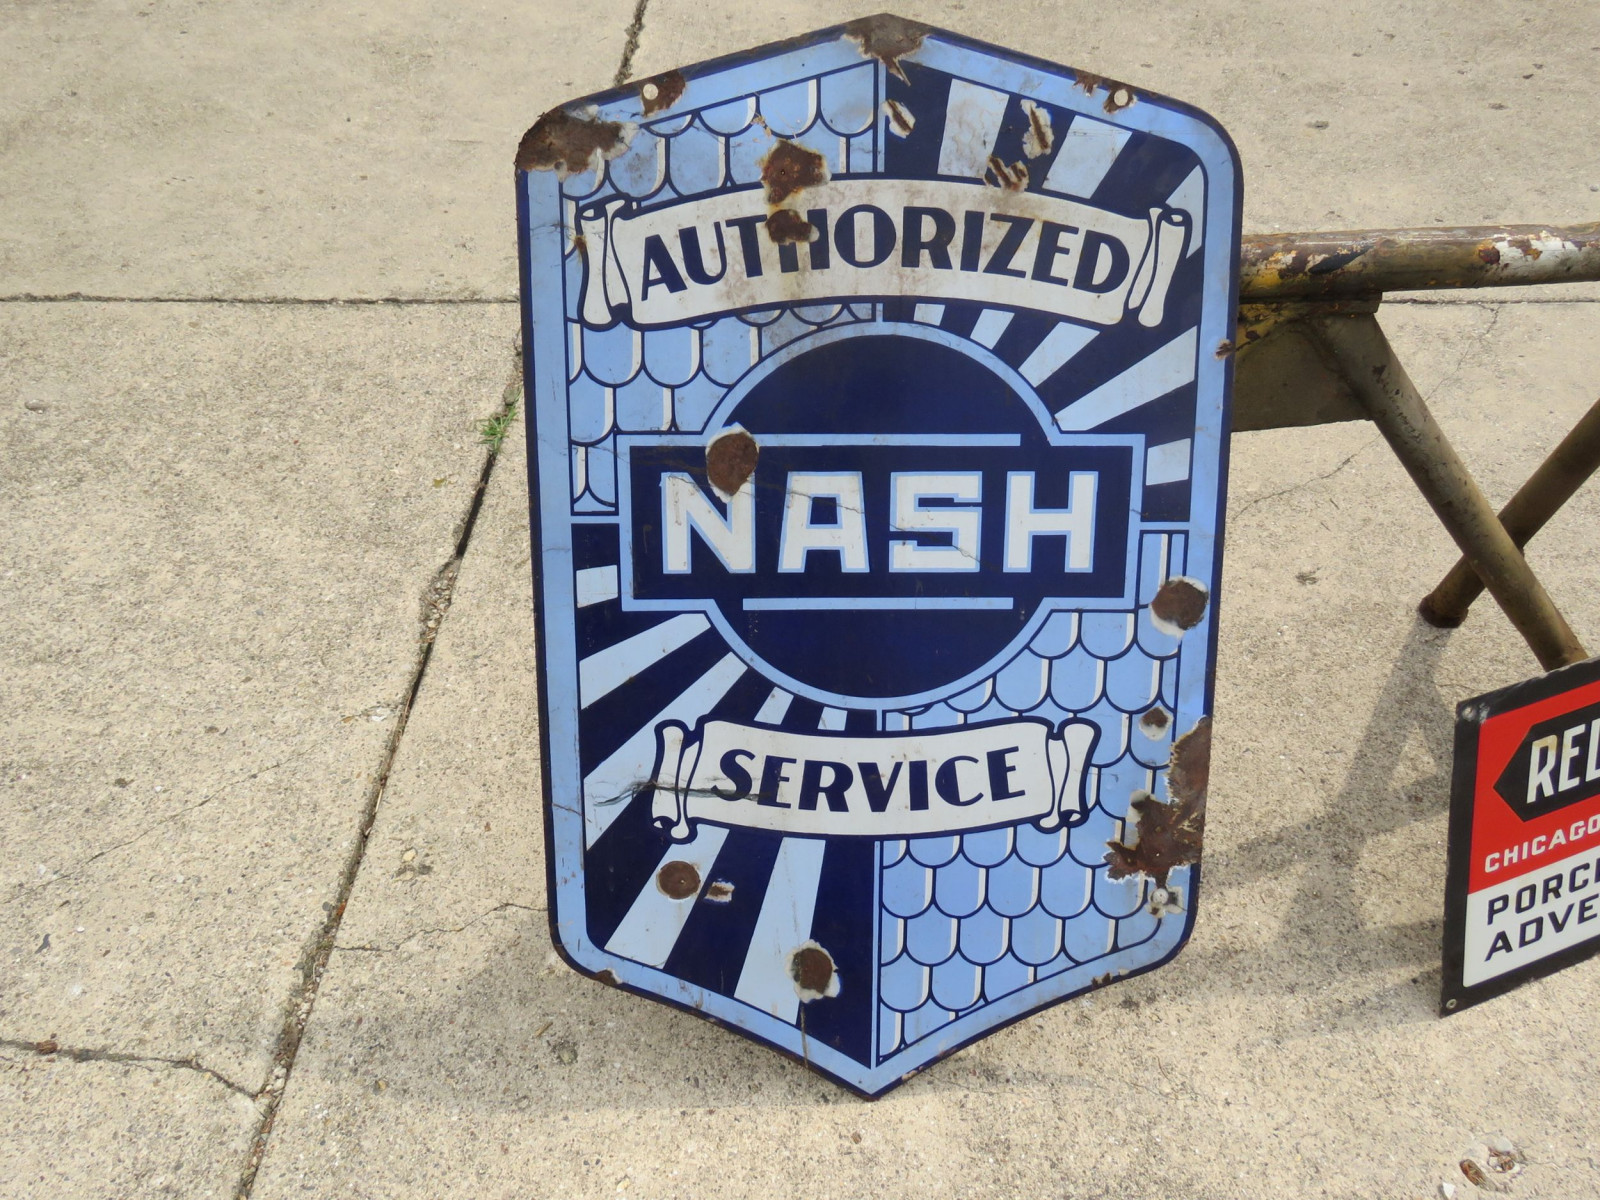 Nash Authorized Service DS Porcelain Sign - Image 1